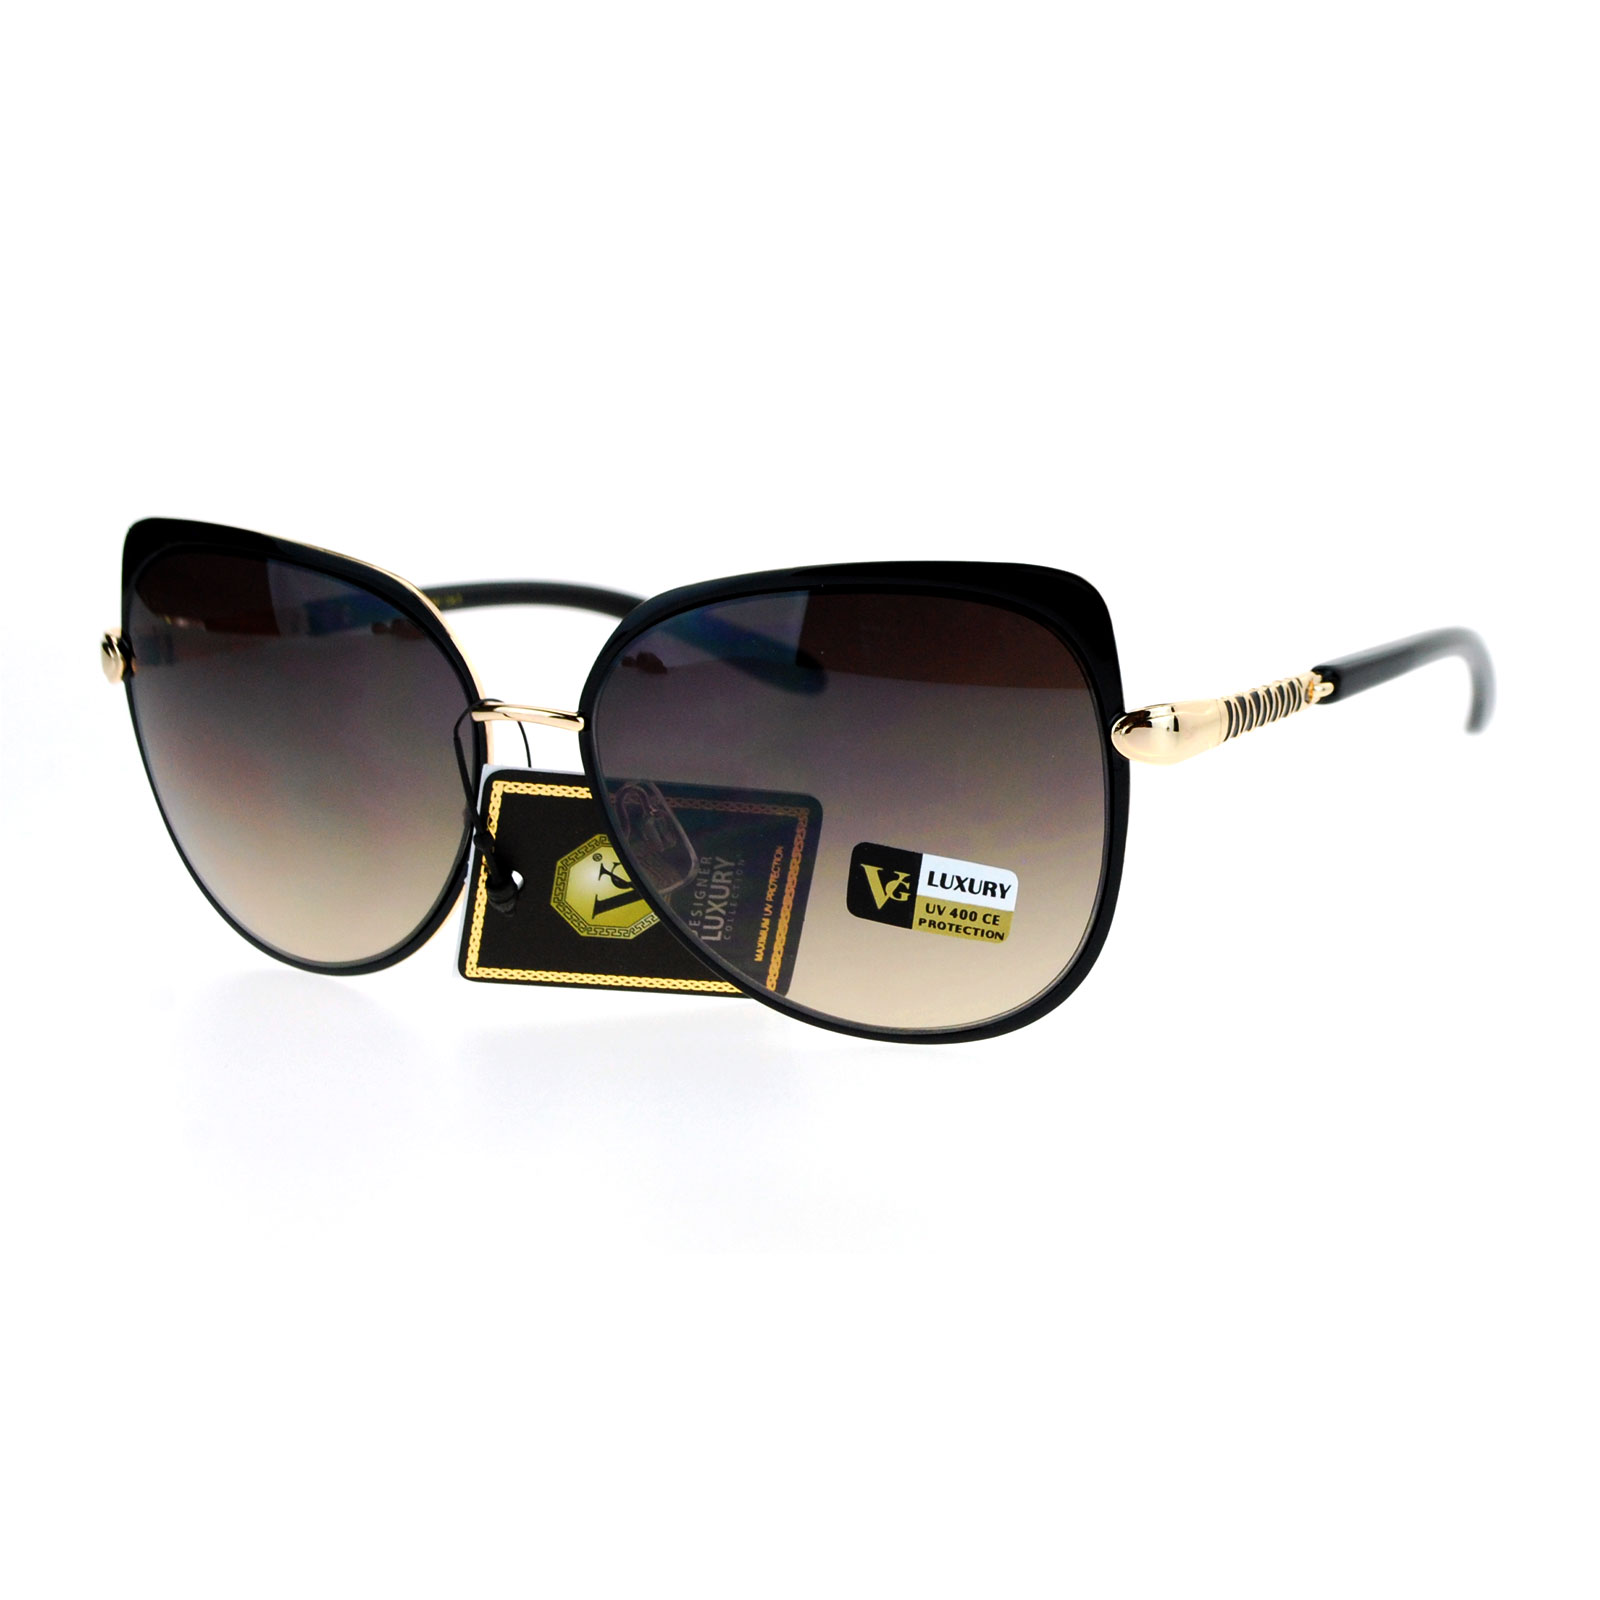 10577fa4628 SA106 - SA106 Luxury Designer Womens Butterfly Metal Diva Sunglasses Black  Gold - Walmart.com